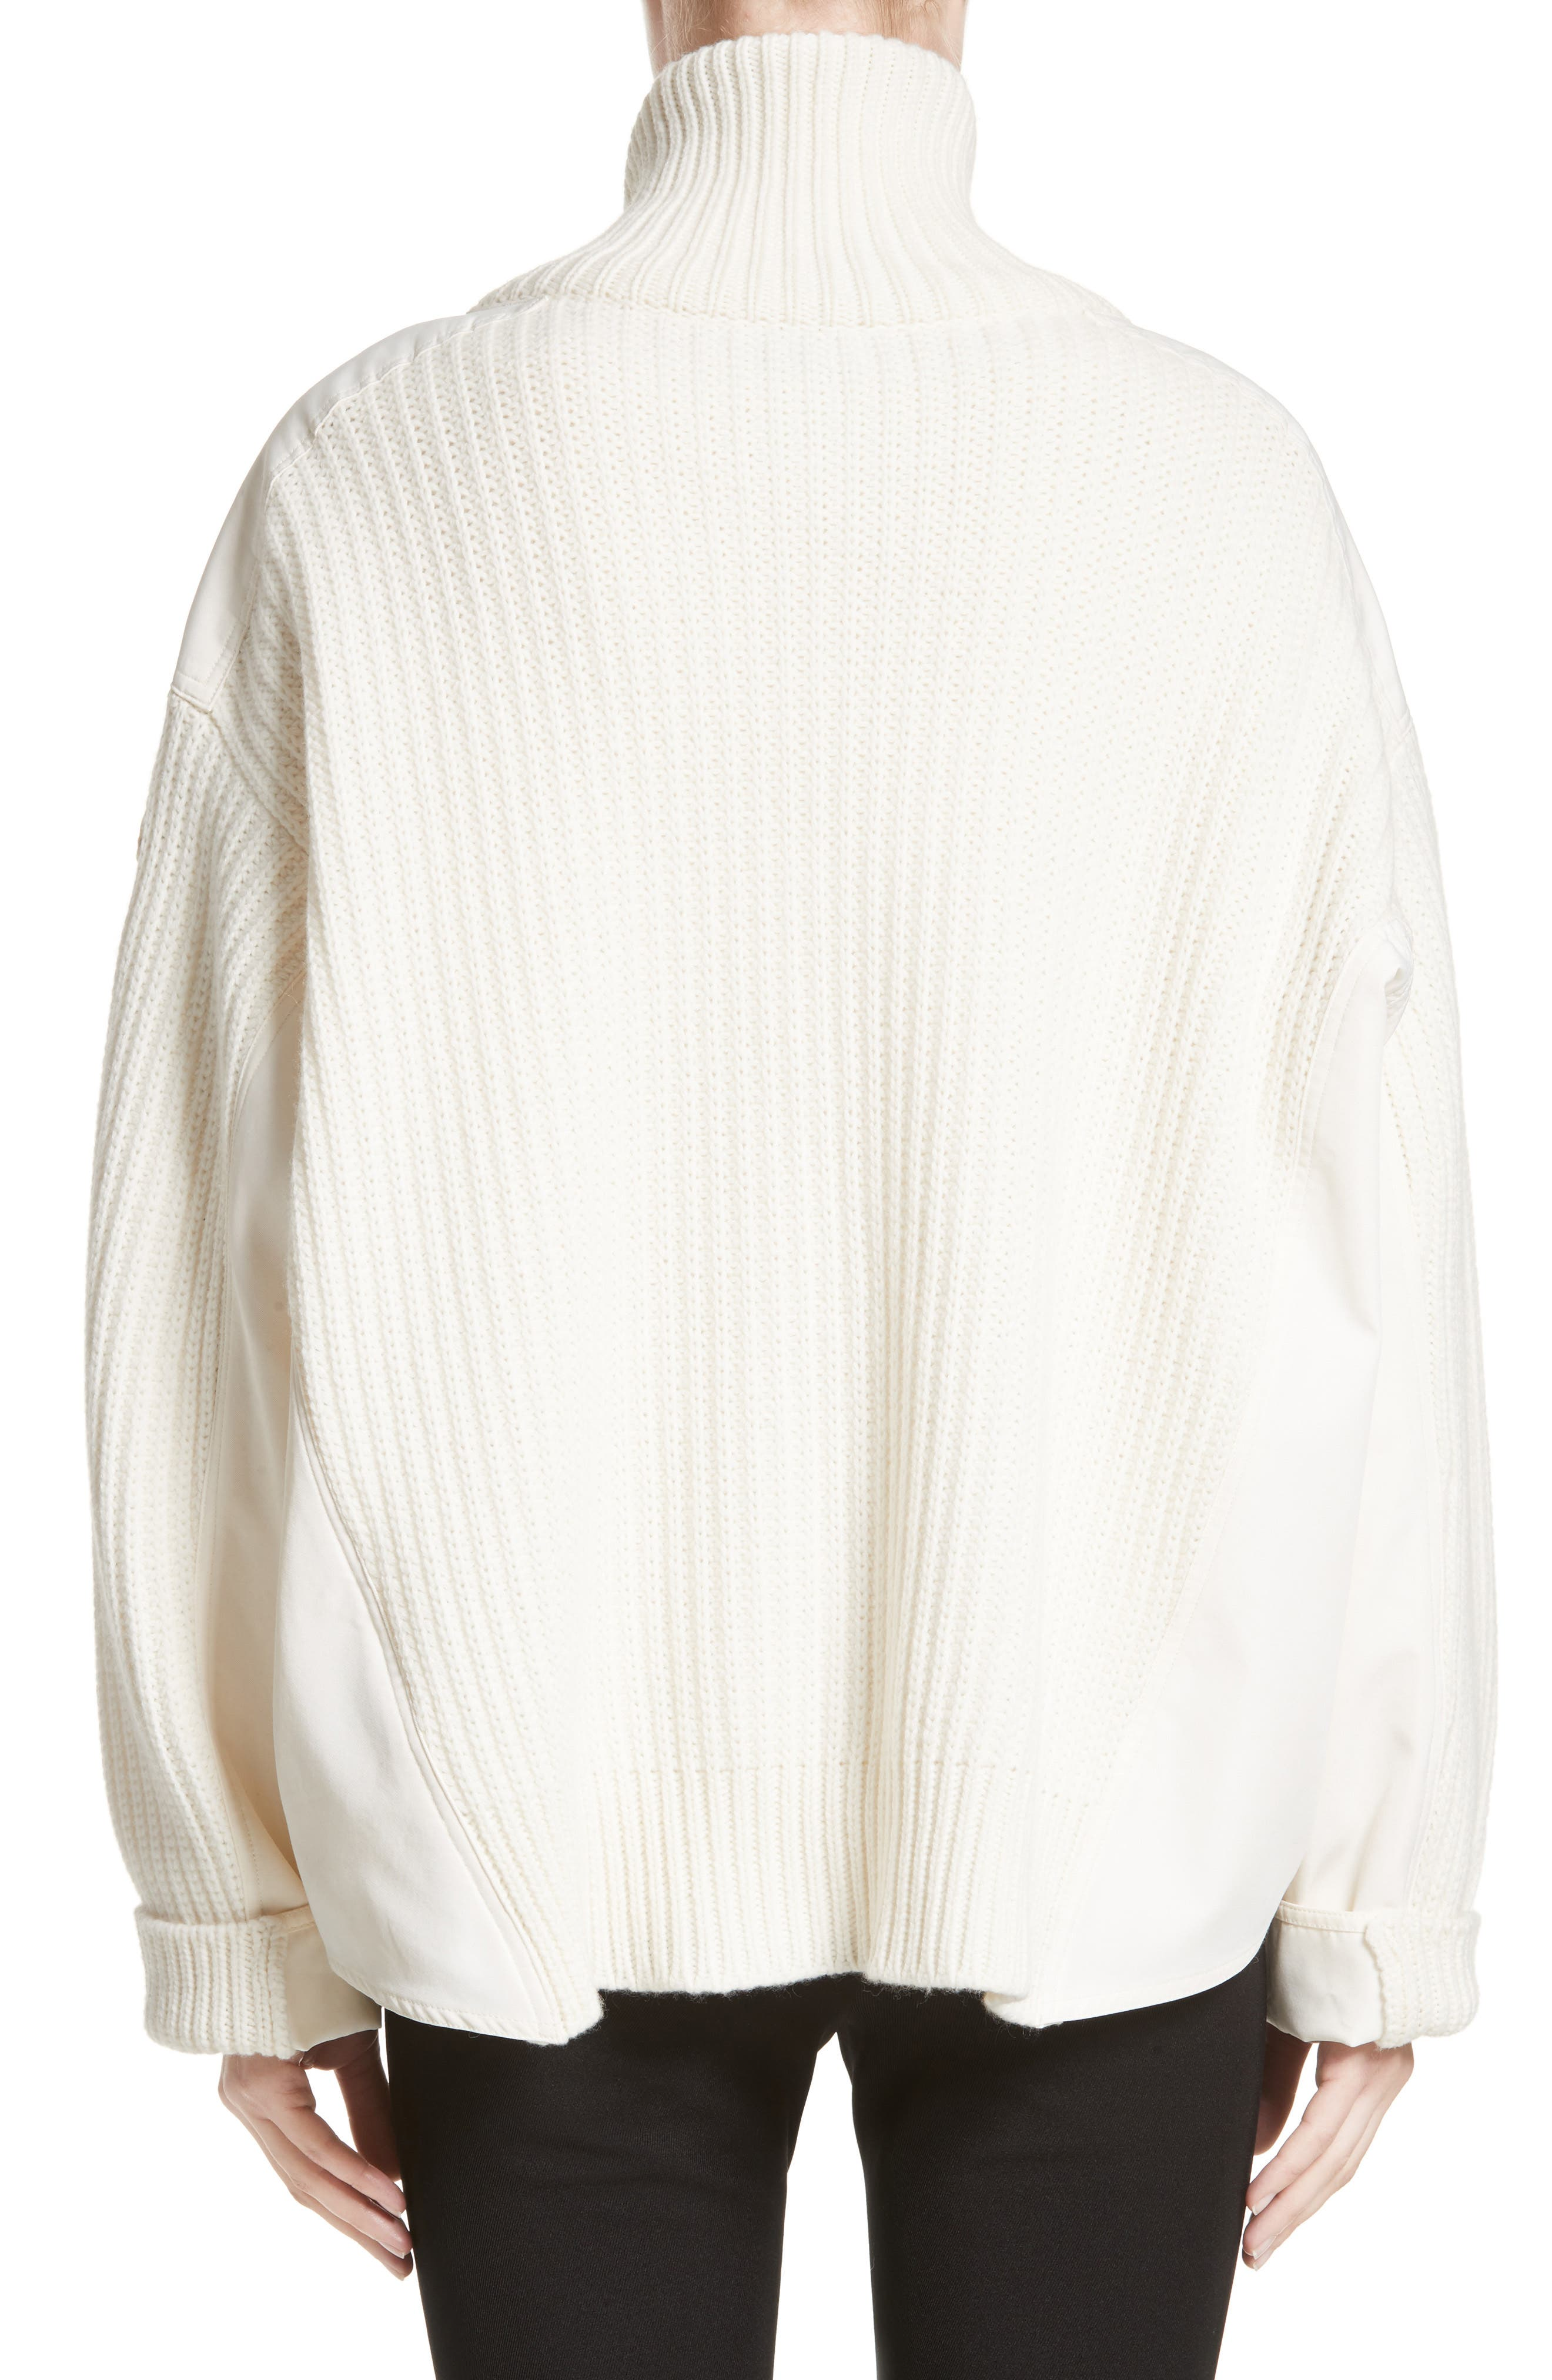 Wool & Cashmere Cardigan,                             Alternate thumbnail 2, color,                             White